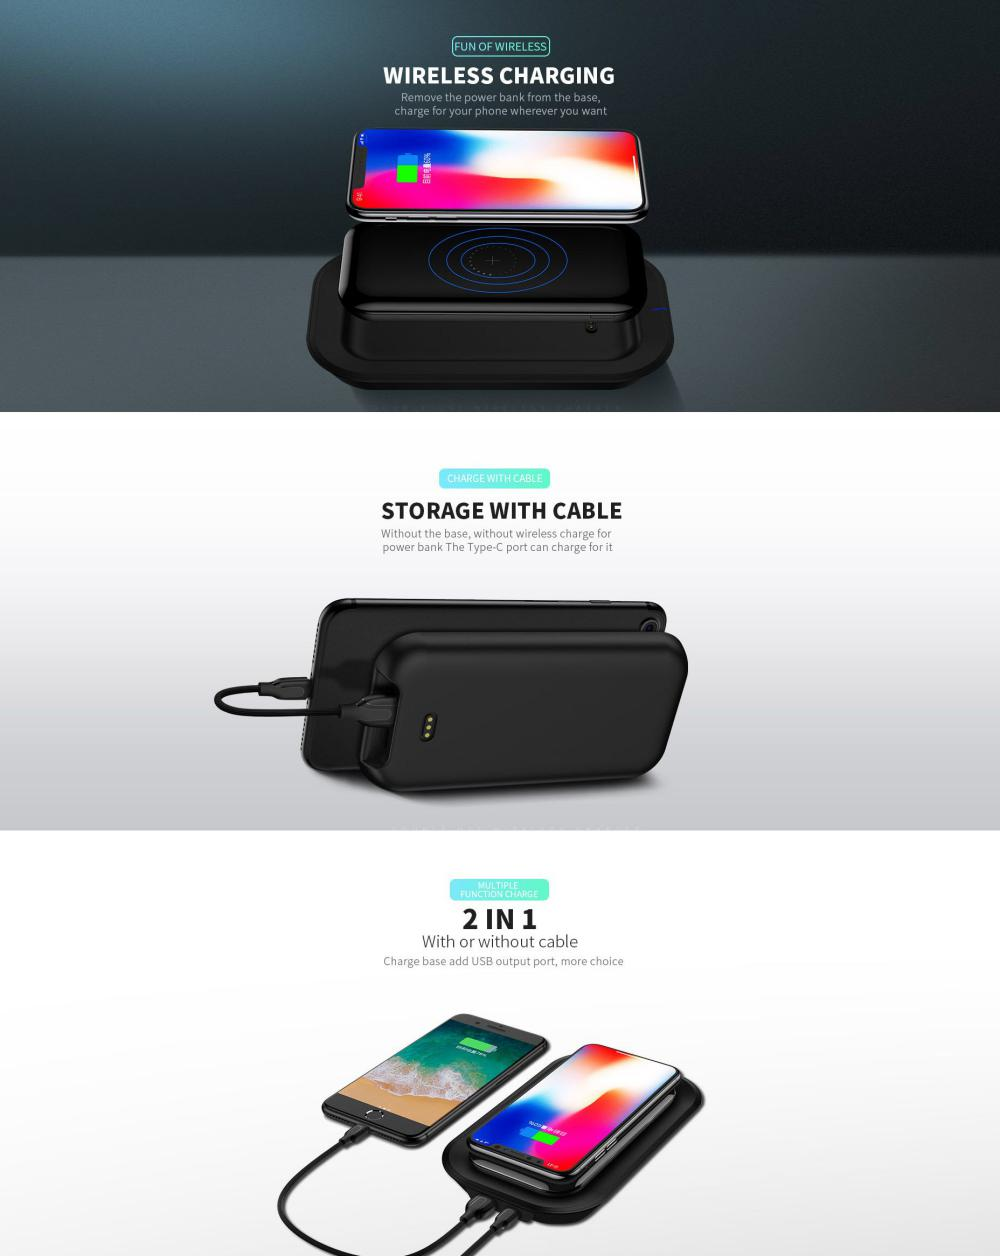 Joyroom 2 In 1 Wireless Charger And Wireless Power Bank (3)